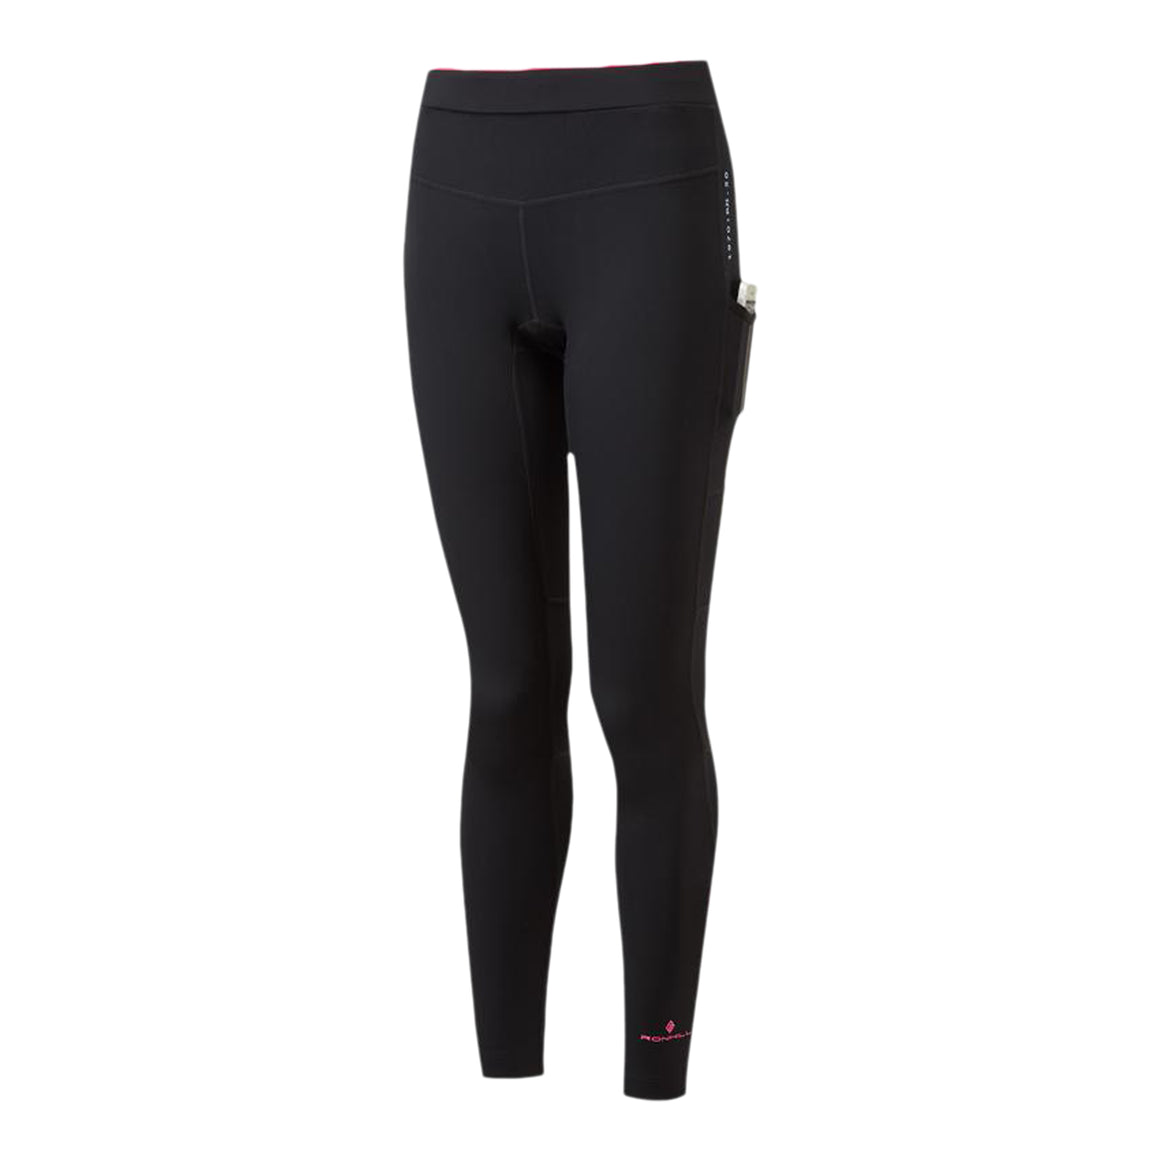 Tech Revive Stretch Tight for Women in Black/Hot Pink